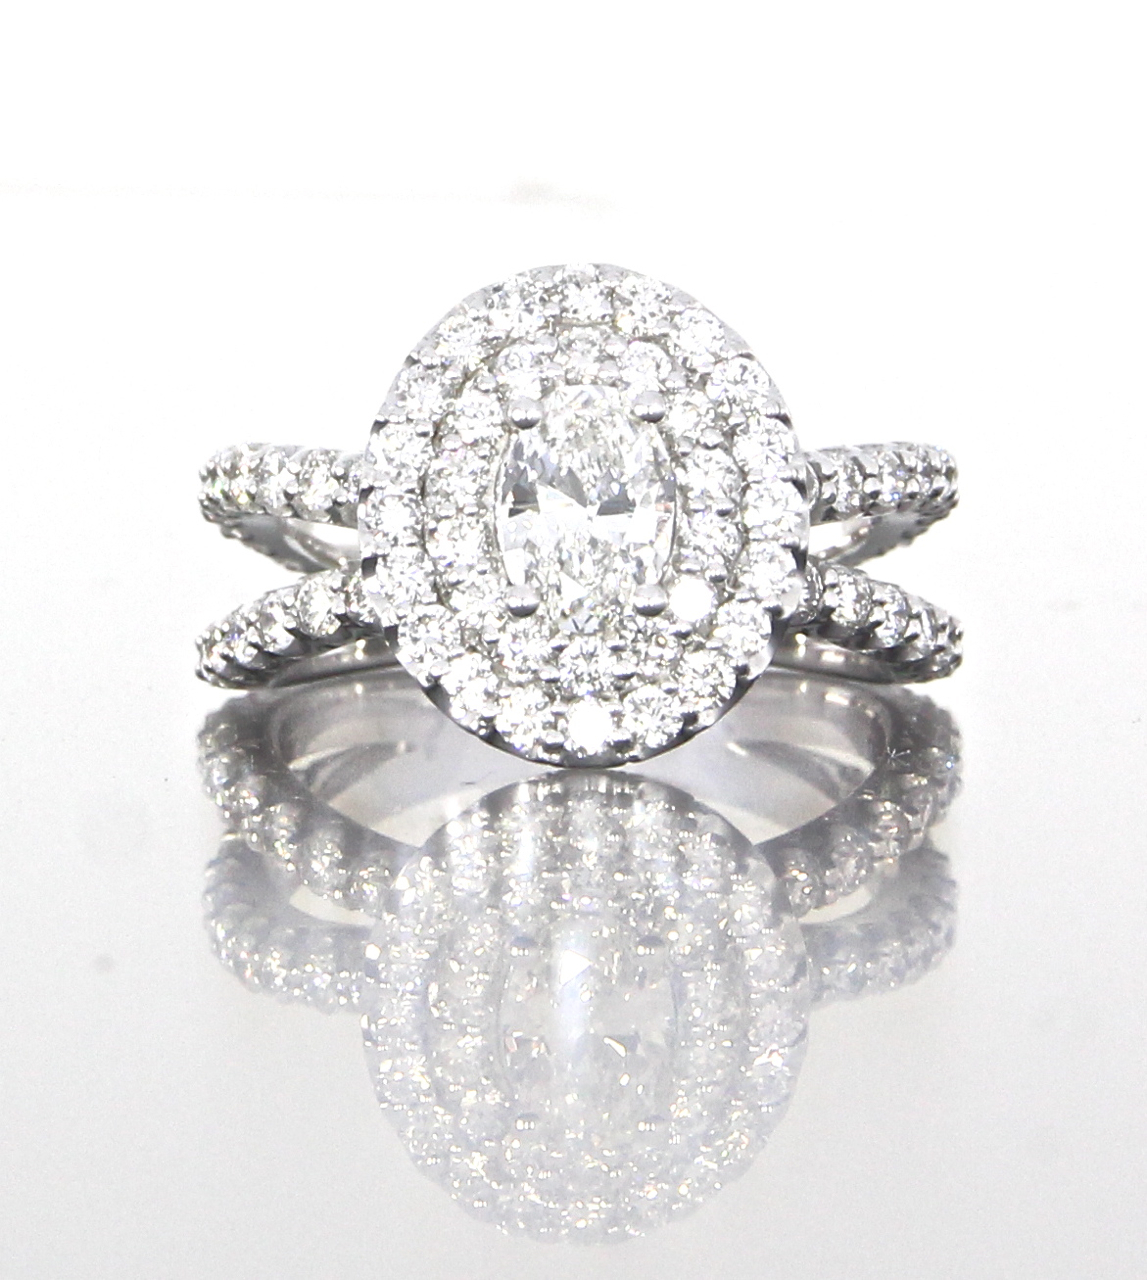 unique-delicate-oval-shape-diamond-double-halo-engagement-ring-craft-revival-jewelry-store-grand-rapids